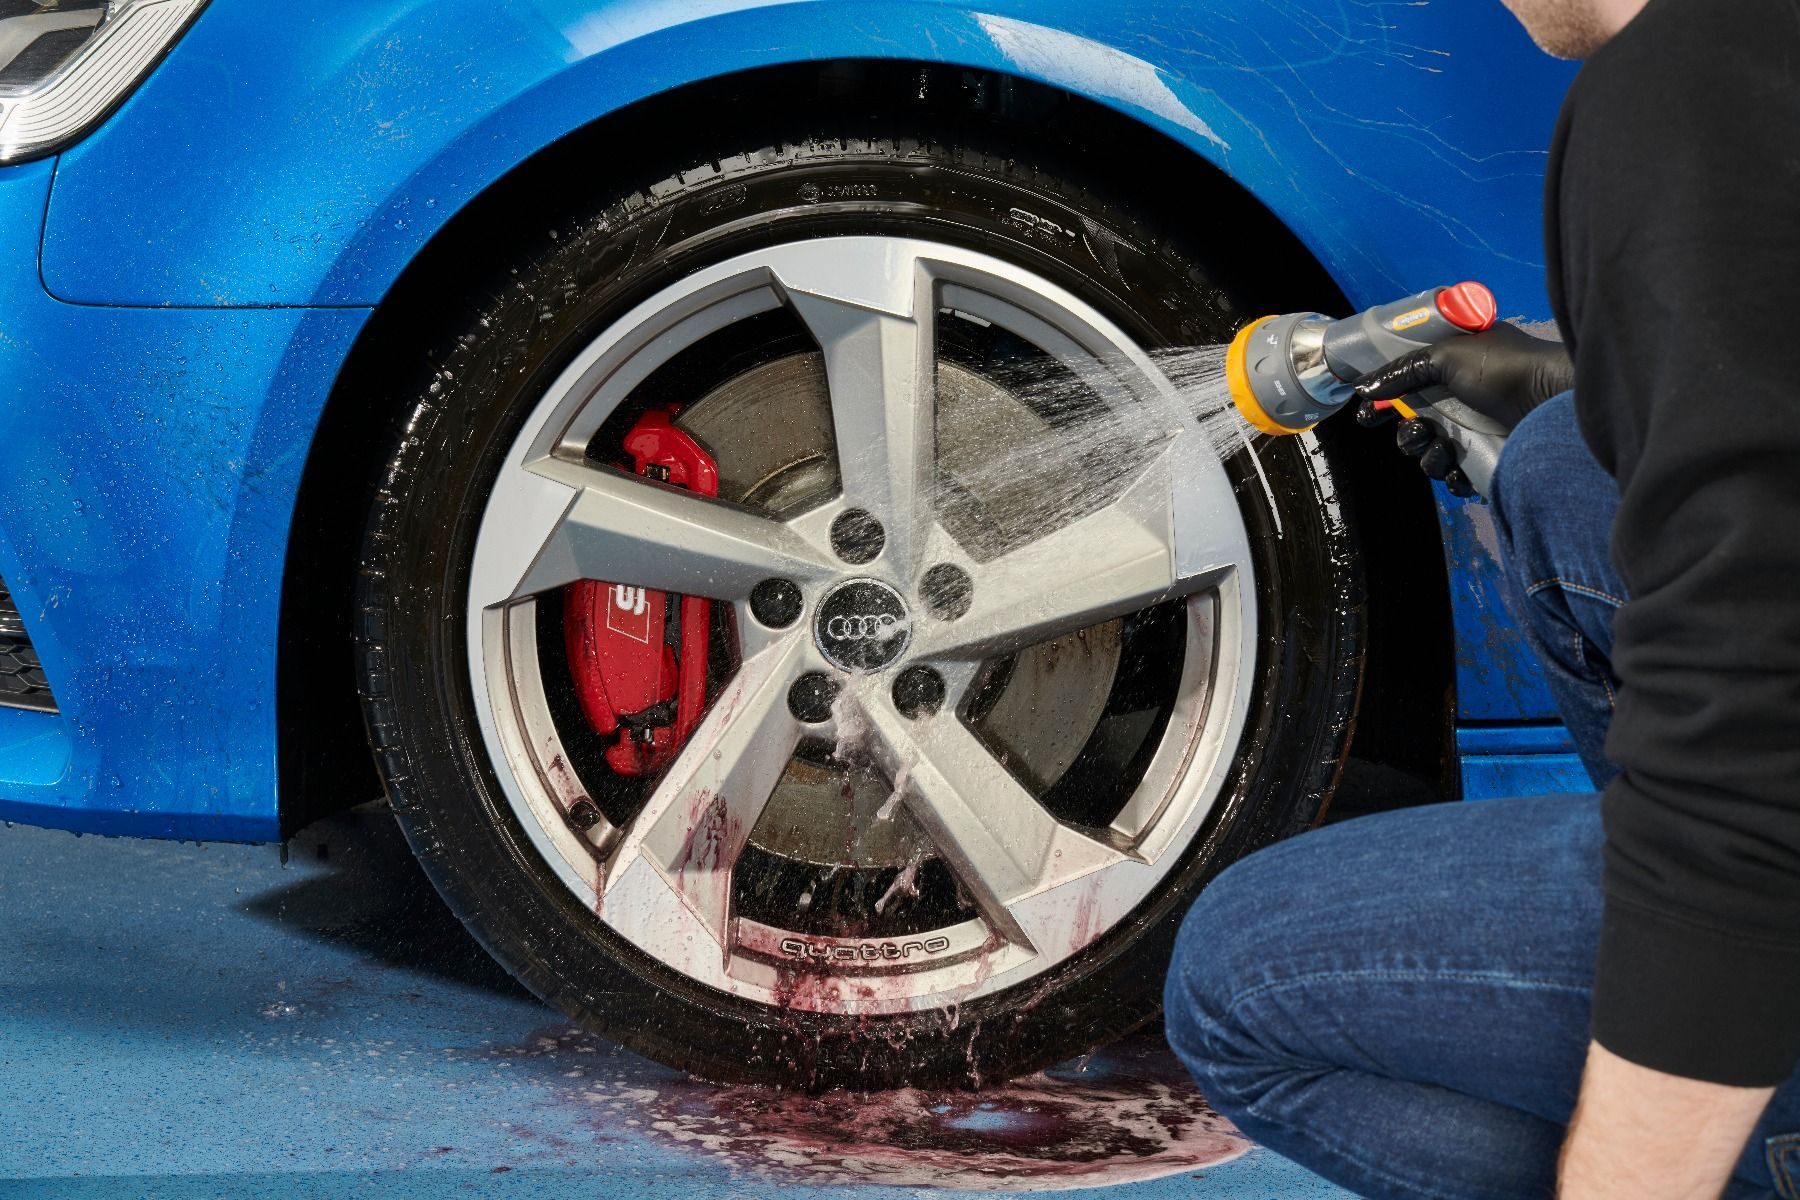 autoglym-wheel-cleaning-mousse-6.jpg